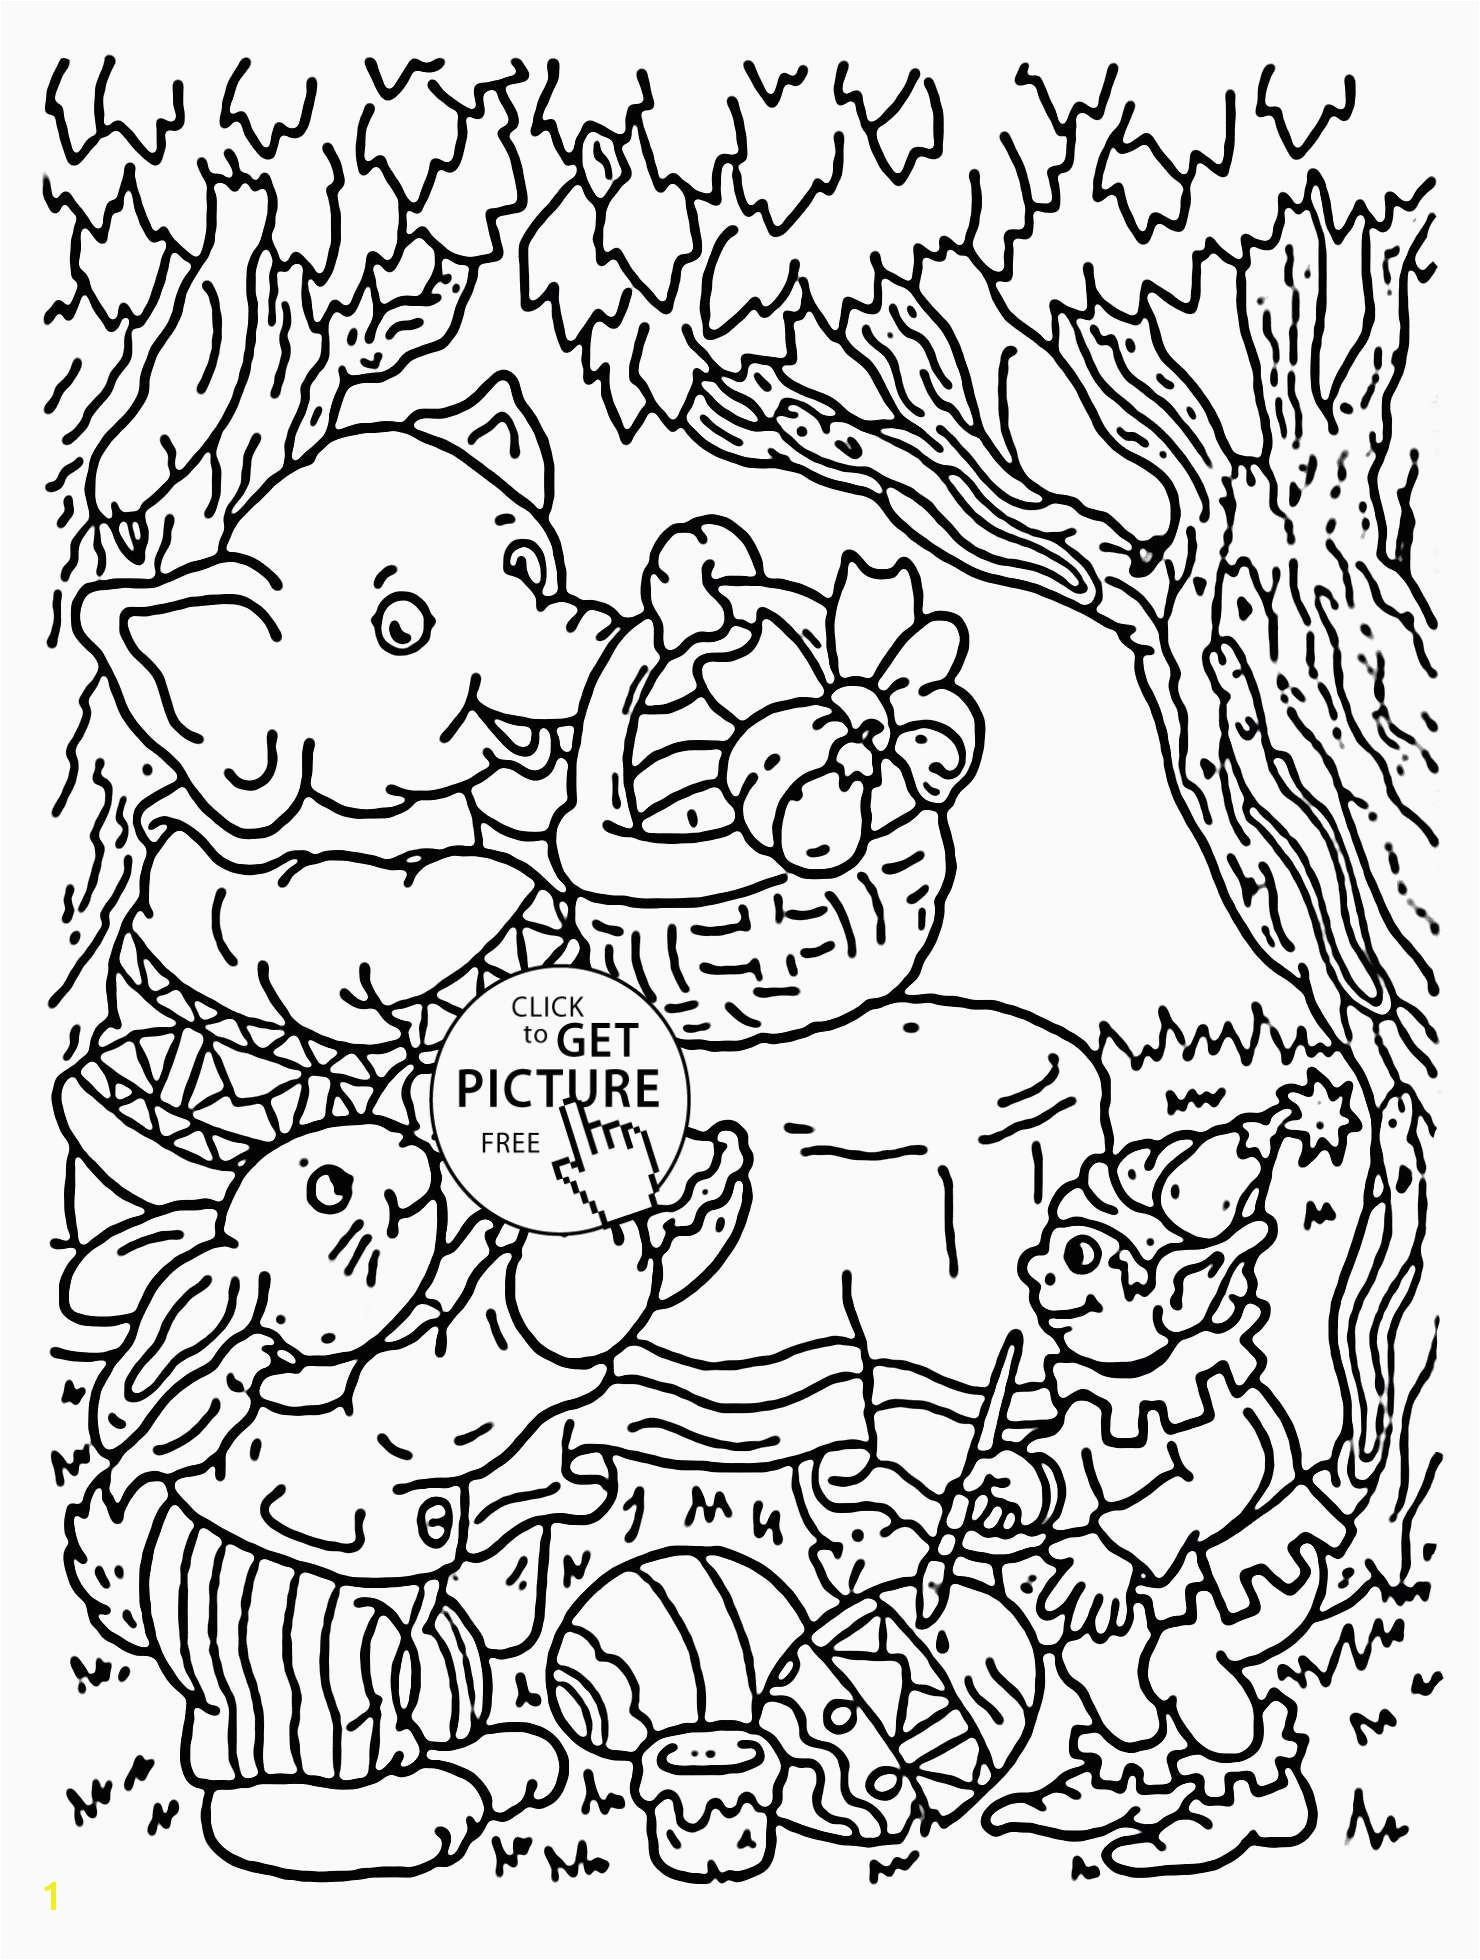 Mermaid Coloring Pages Mermaid Coloring Page Inspirational Print Coloring Pages Luxury S S Media Cache Ak0